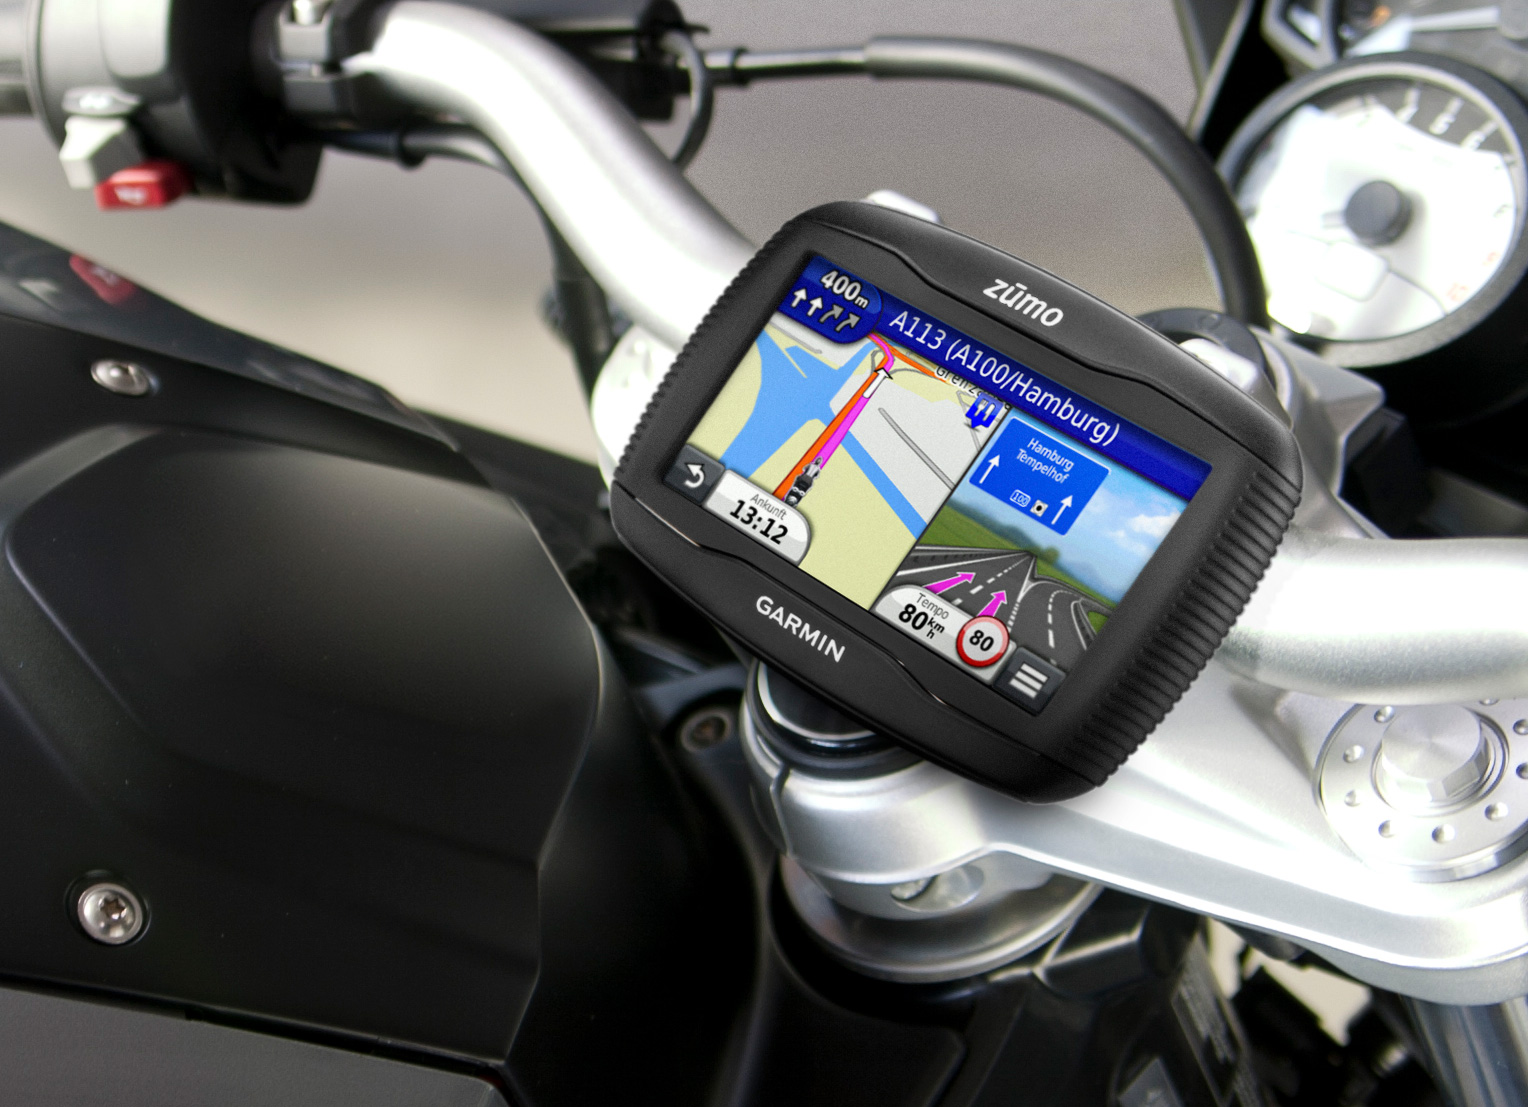 garmin pr sentiert motorrad navi zumo 340lm. Black Bedroom Furniture Sets. Home Design Ideas